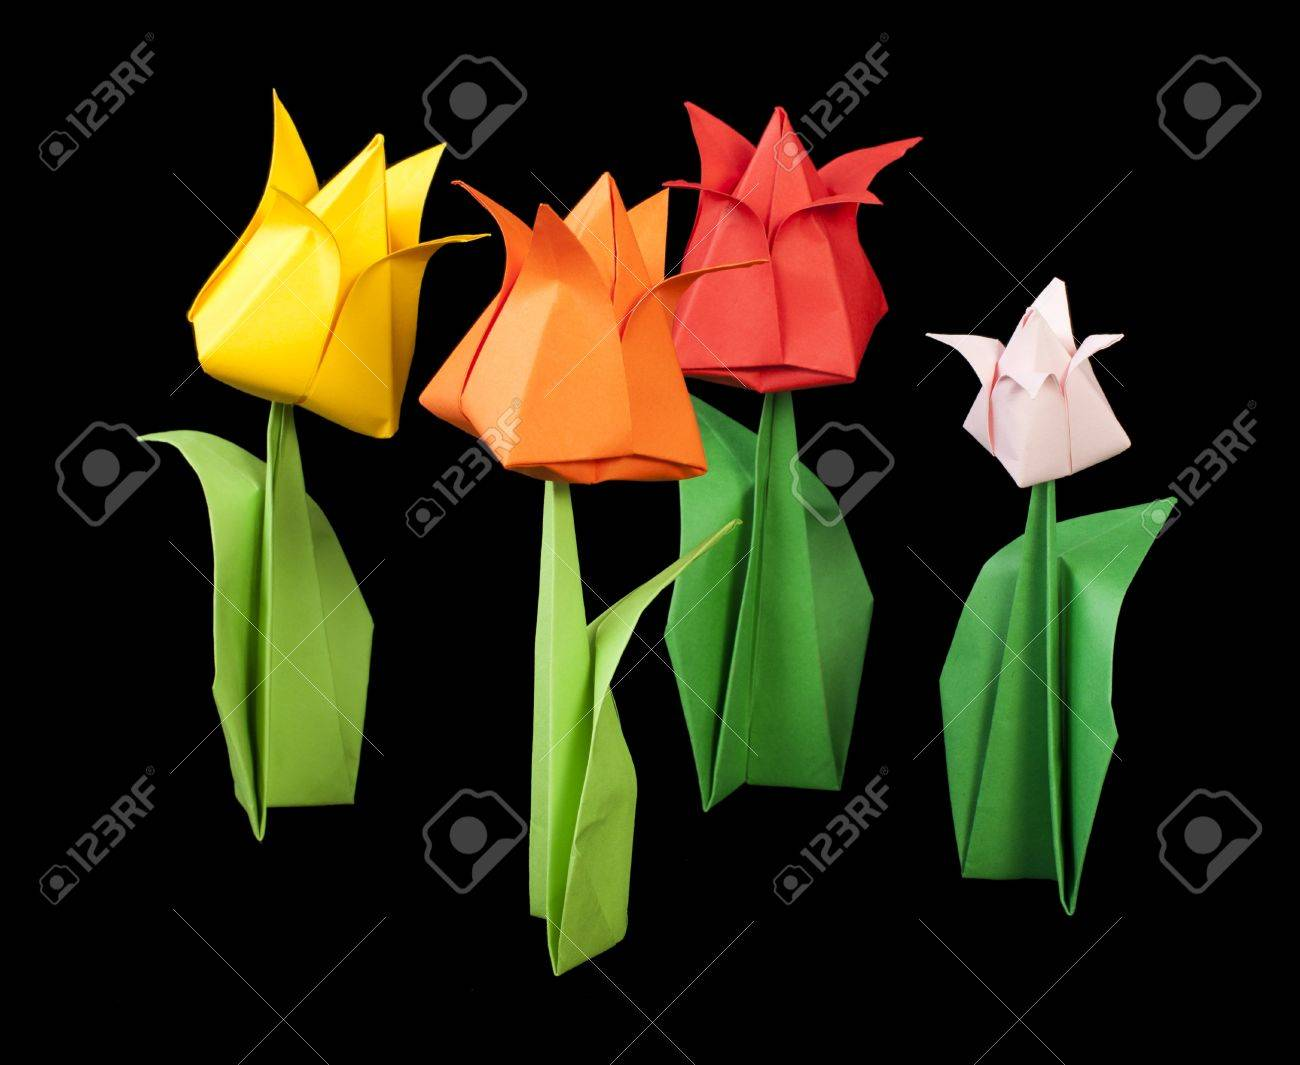 Tulips isolated on black background paper made flowers stock photo stock photo tulips isolated on black background paper made flowers mightylinksfo Images